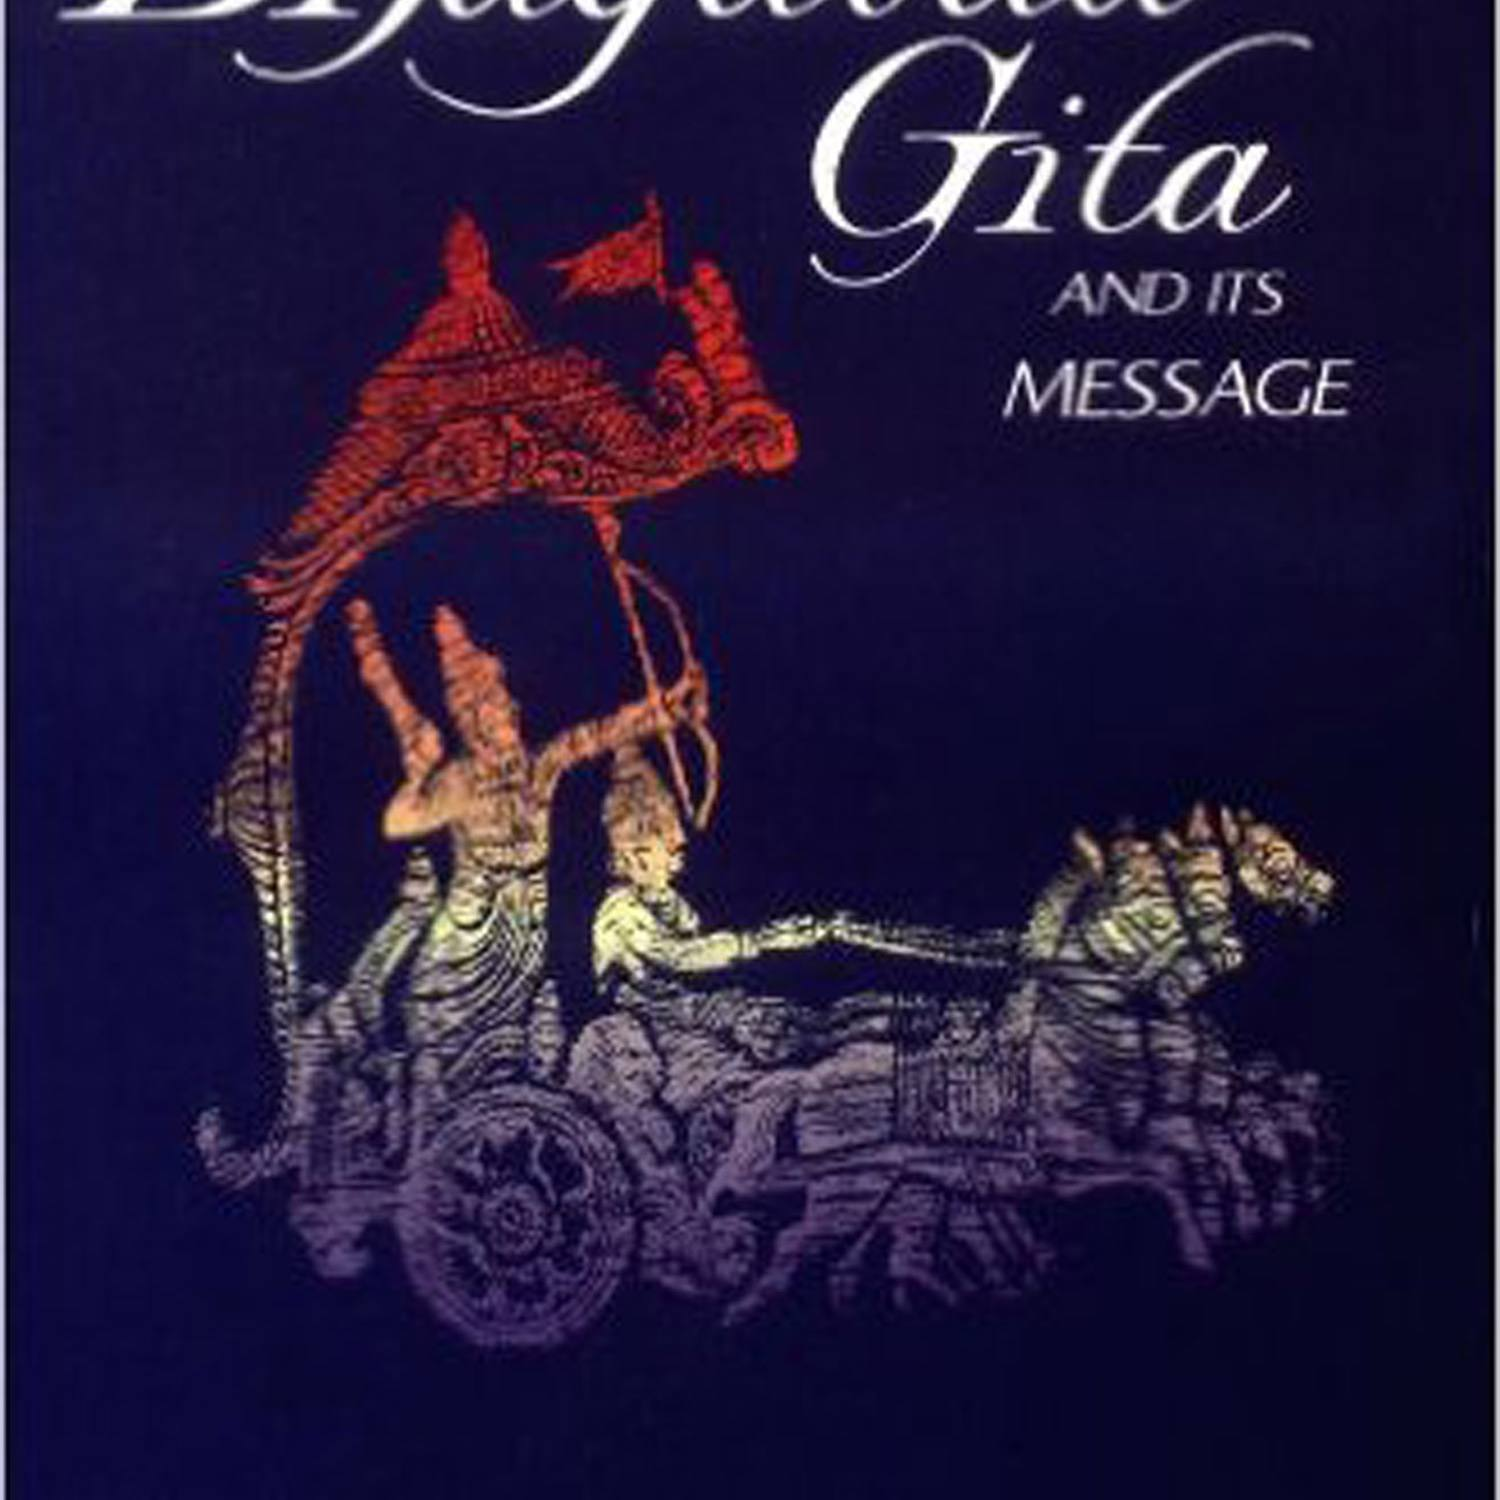 The 10 Best Books on the Bhagavad Gita of 2019